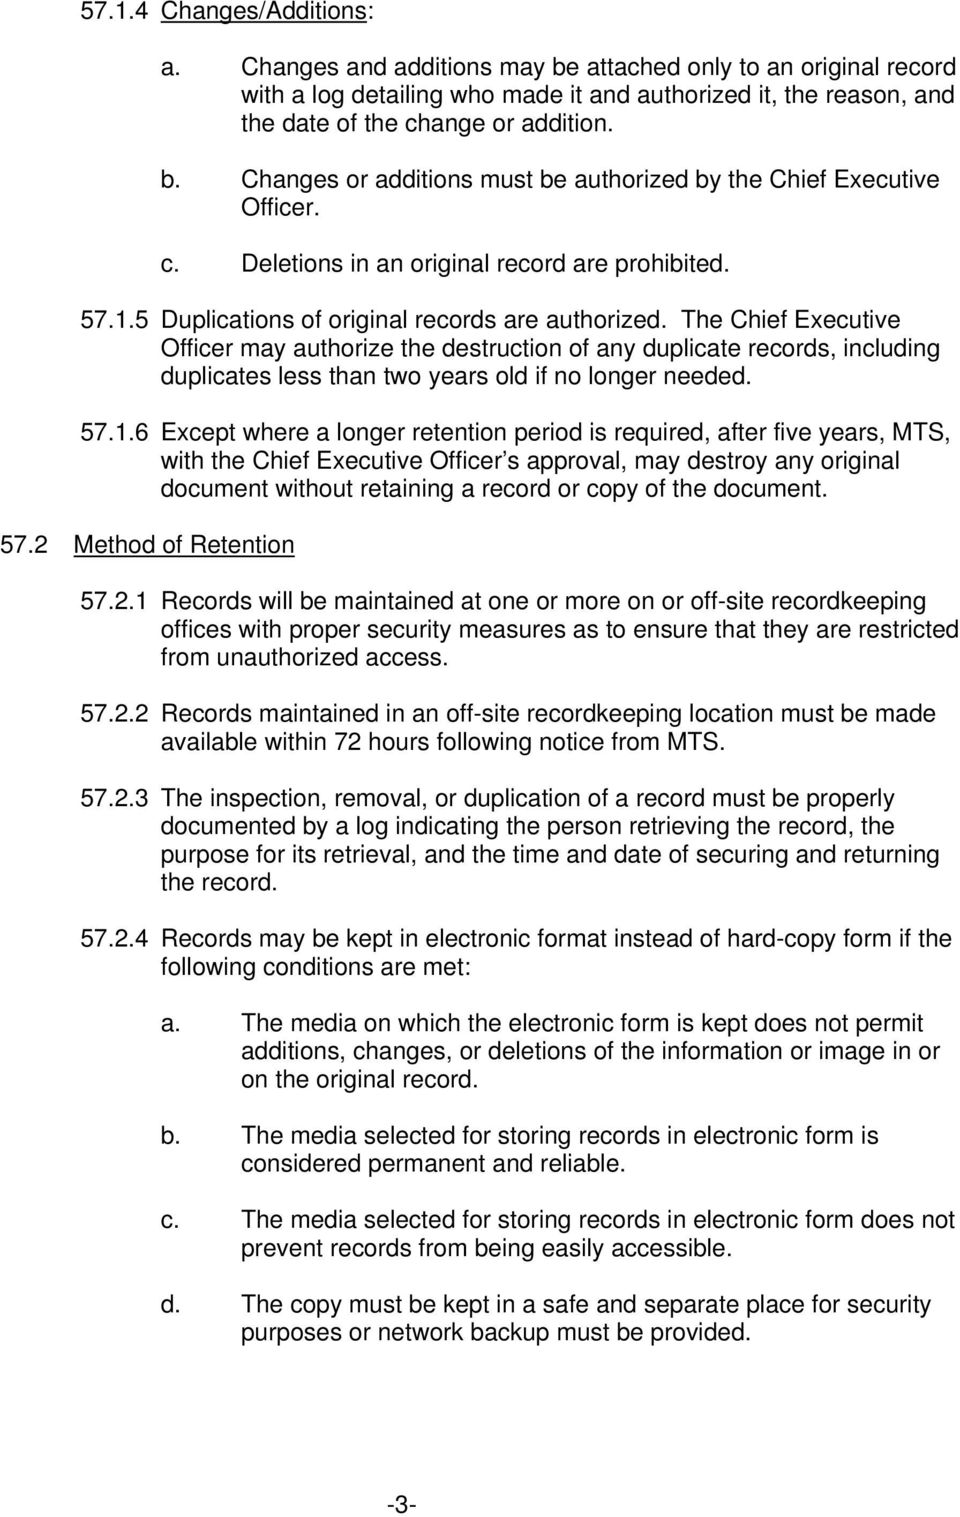 The Chief Executive Officer may authorize the destruction of any duplicate records, including duplicates less than two years old if no longer needed. 57.1.